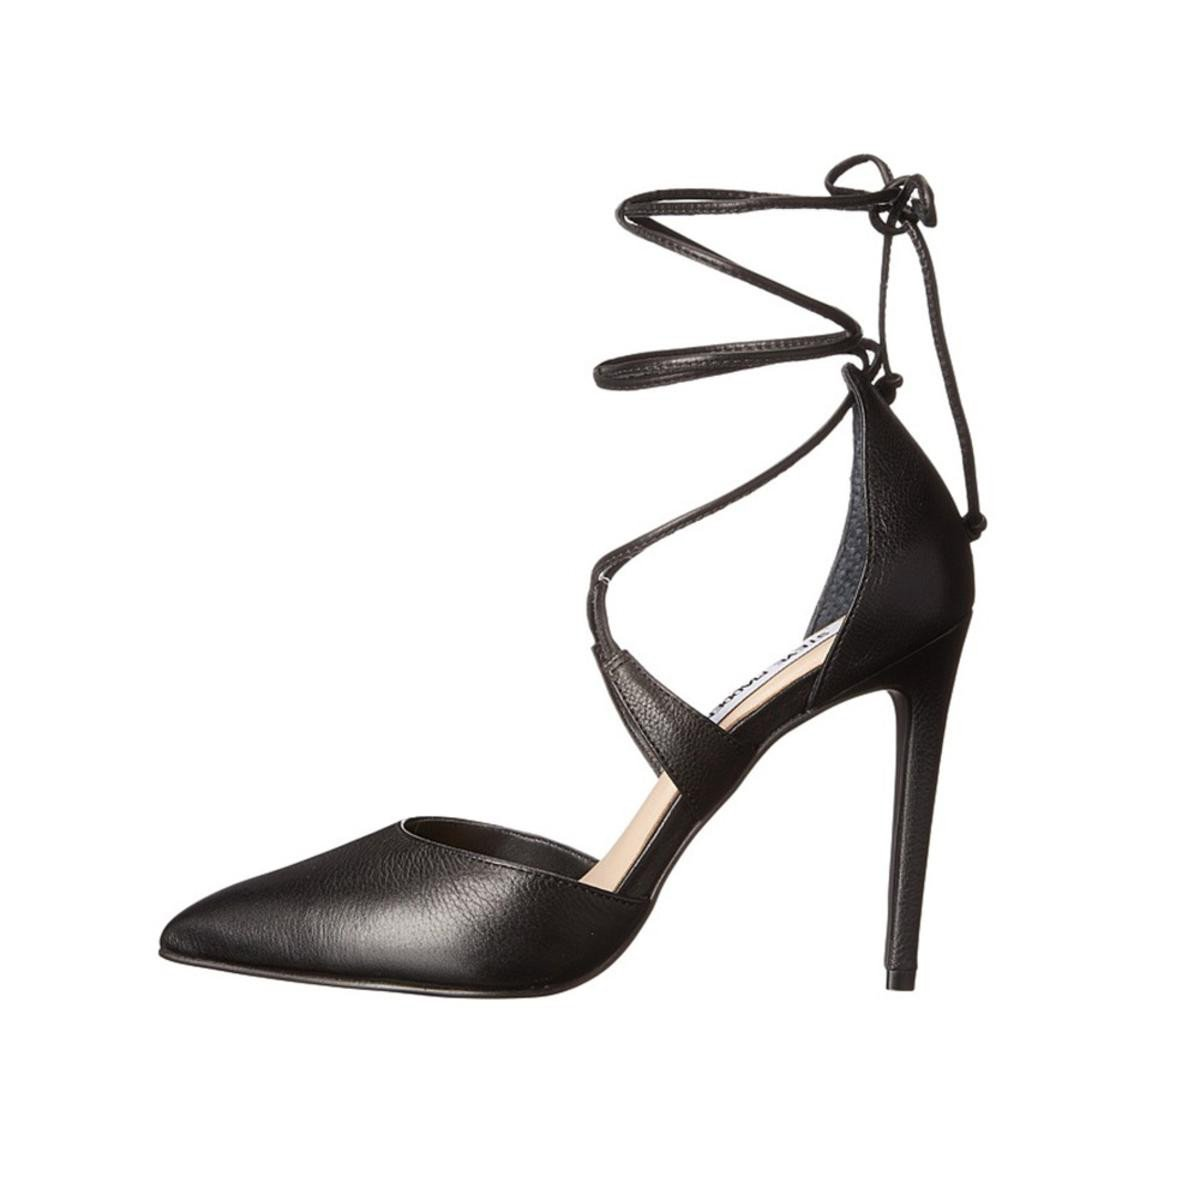 Steve Madden for Women: Raela Black Heel